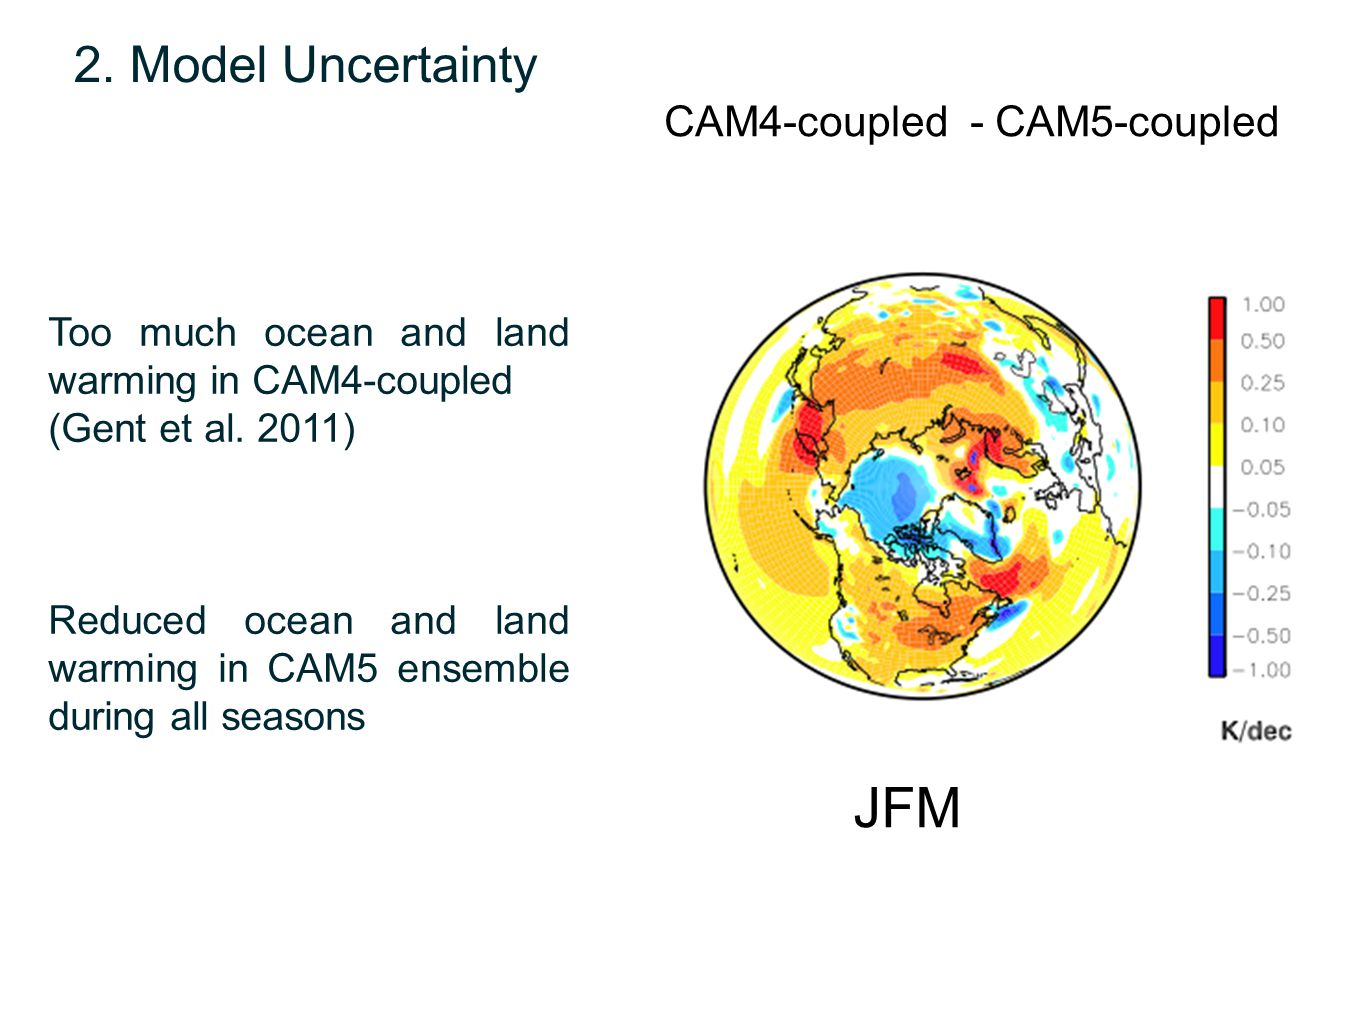 JFM 2. Model Uncertainty CAM4-coupled - CAM5-coupled